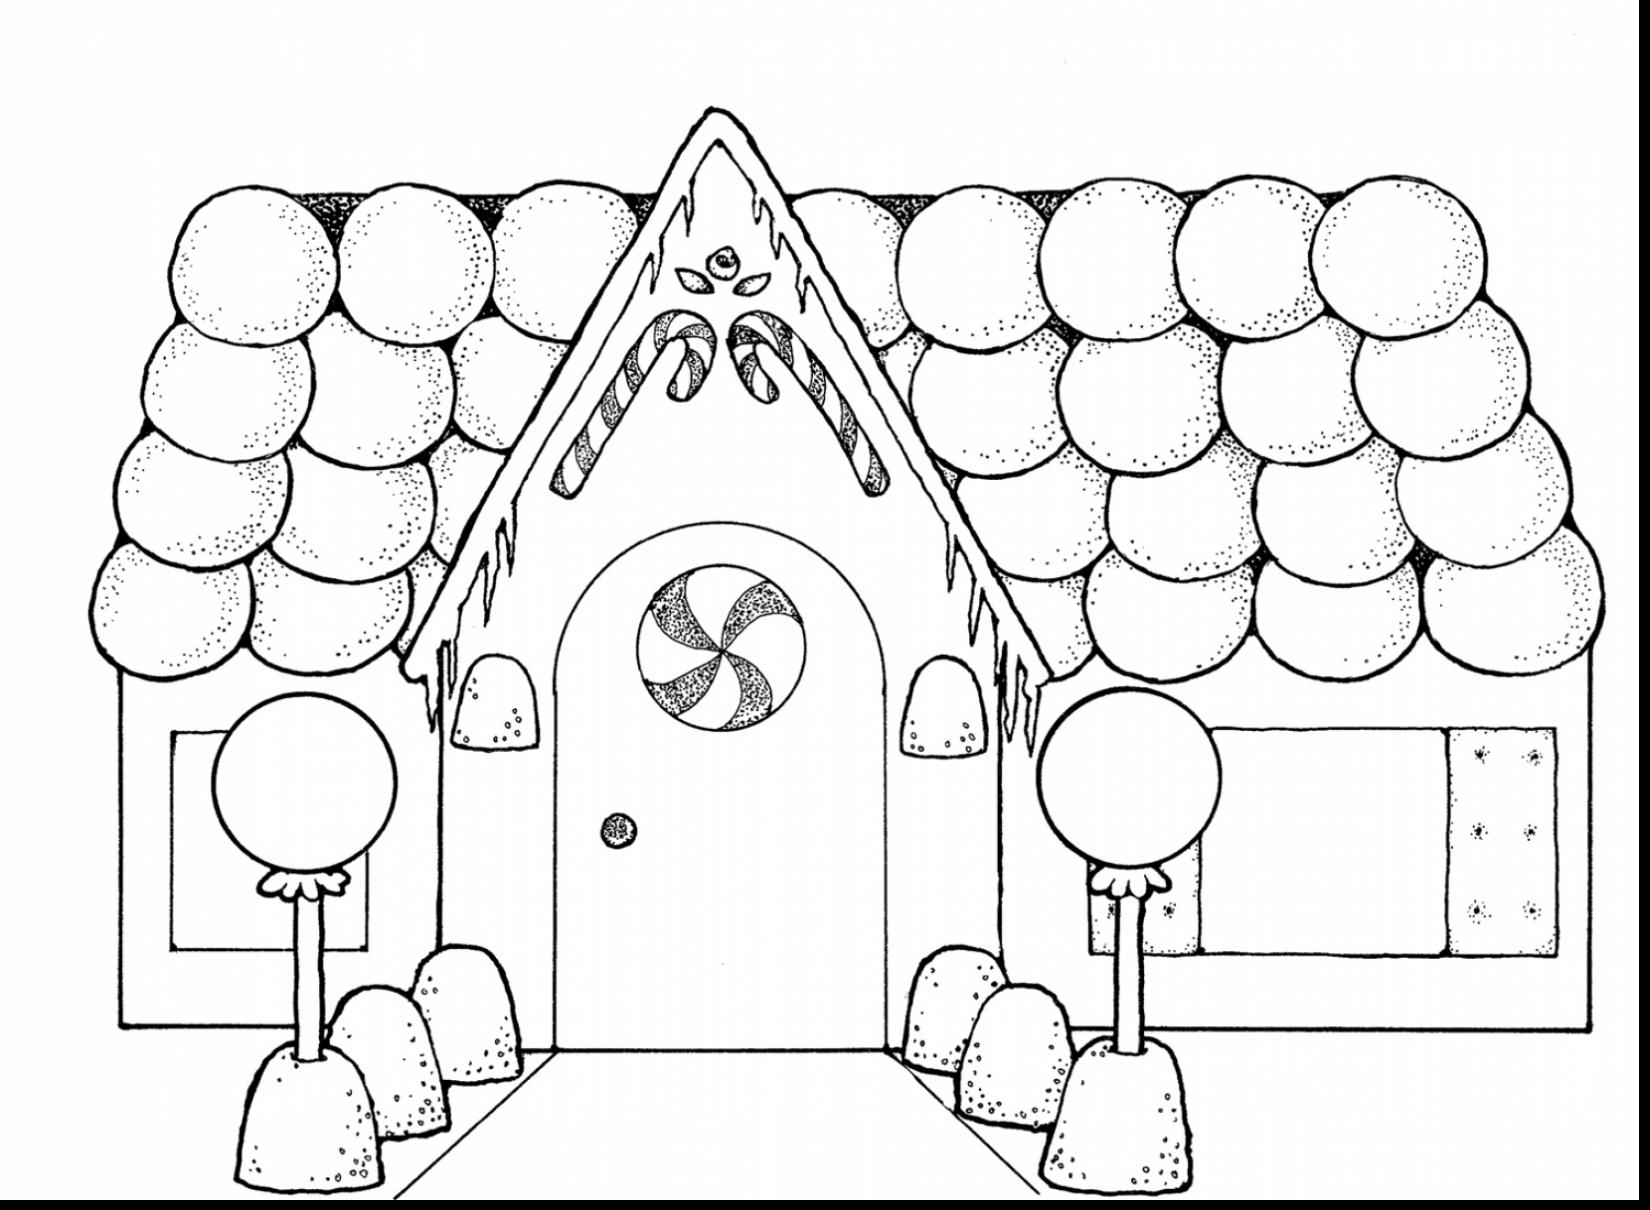 Christmas Hamster Coloring Pages With Gingerbread House Collection Play Learn